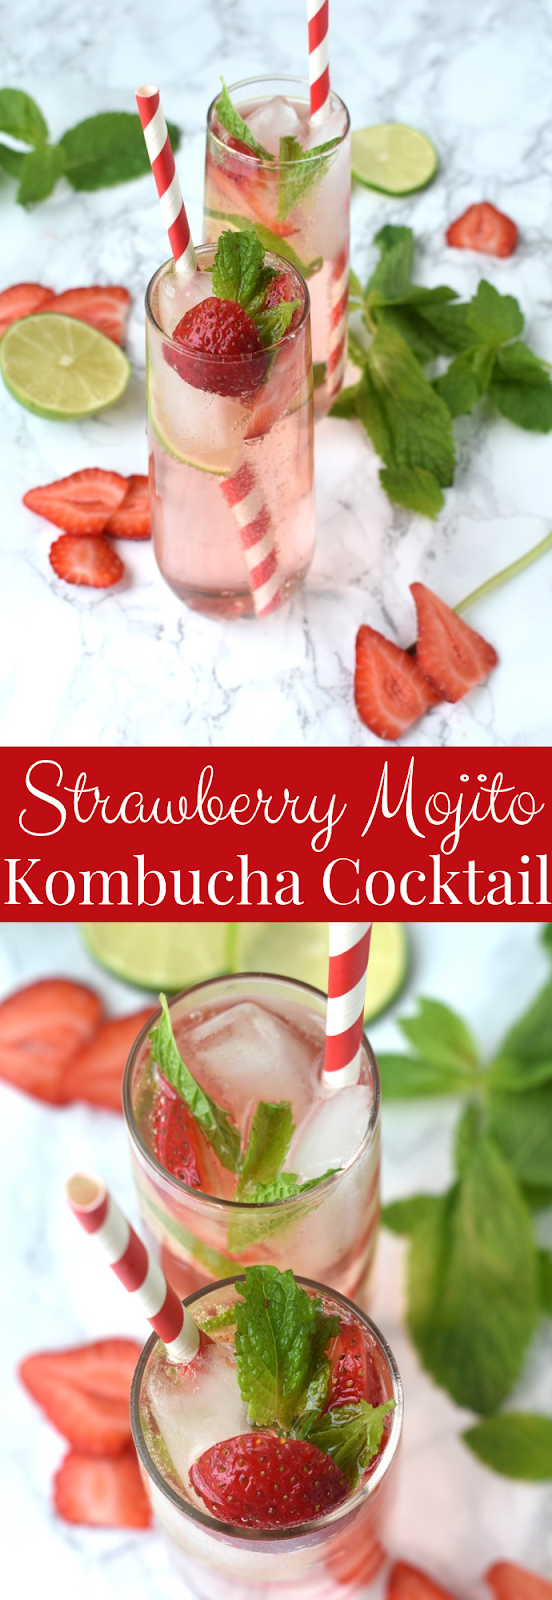 Strawberry Mojito Kombucha Cocktail recipe